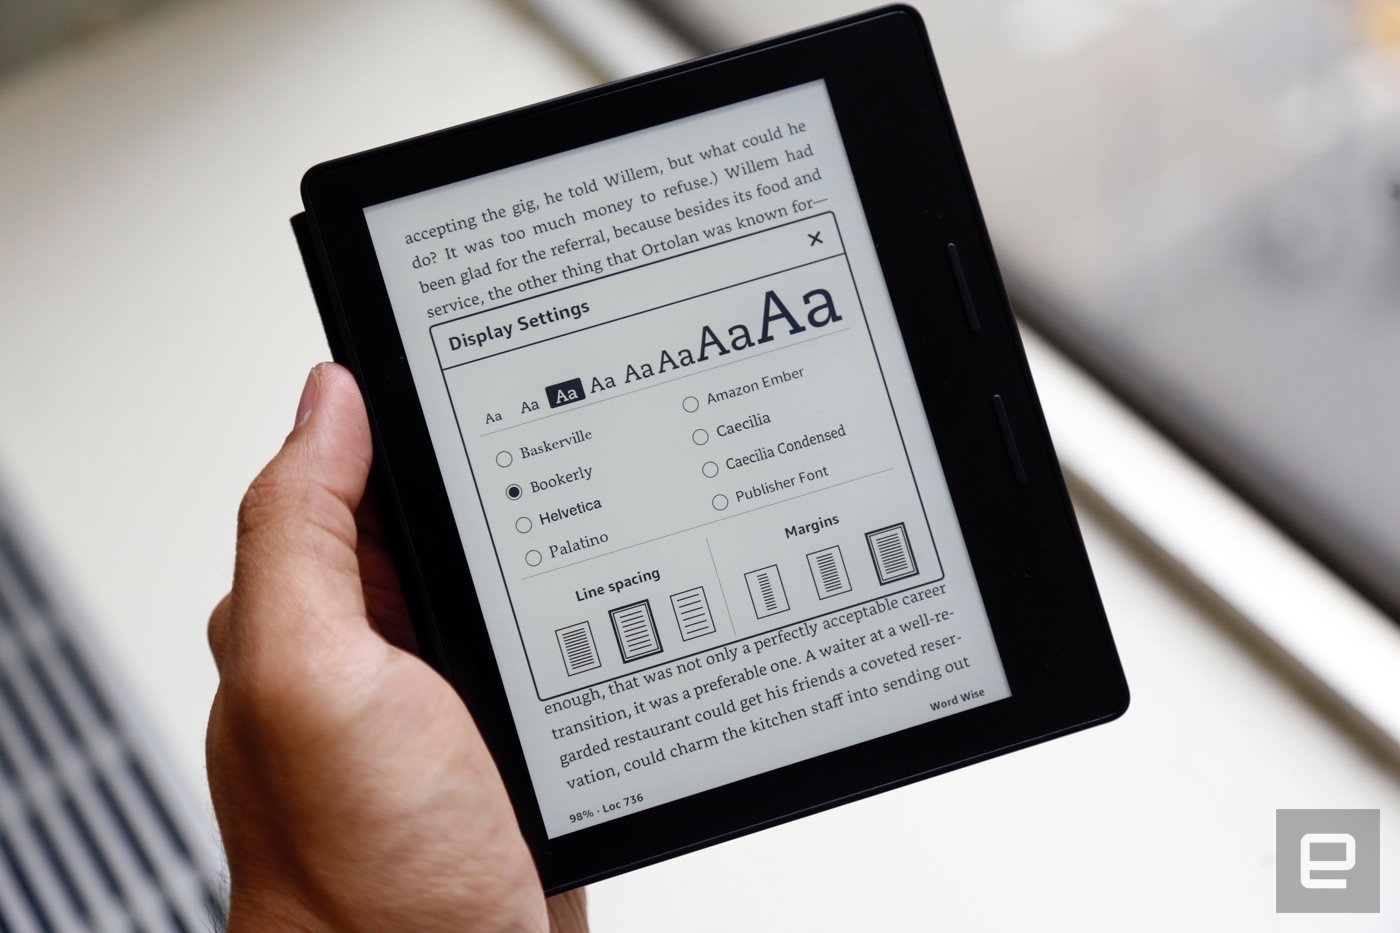 kindle how to delete books